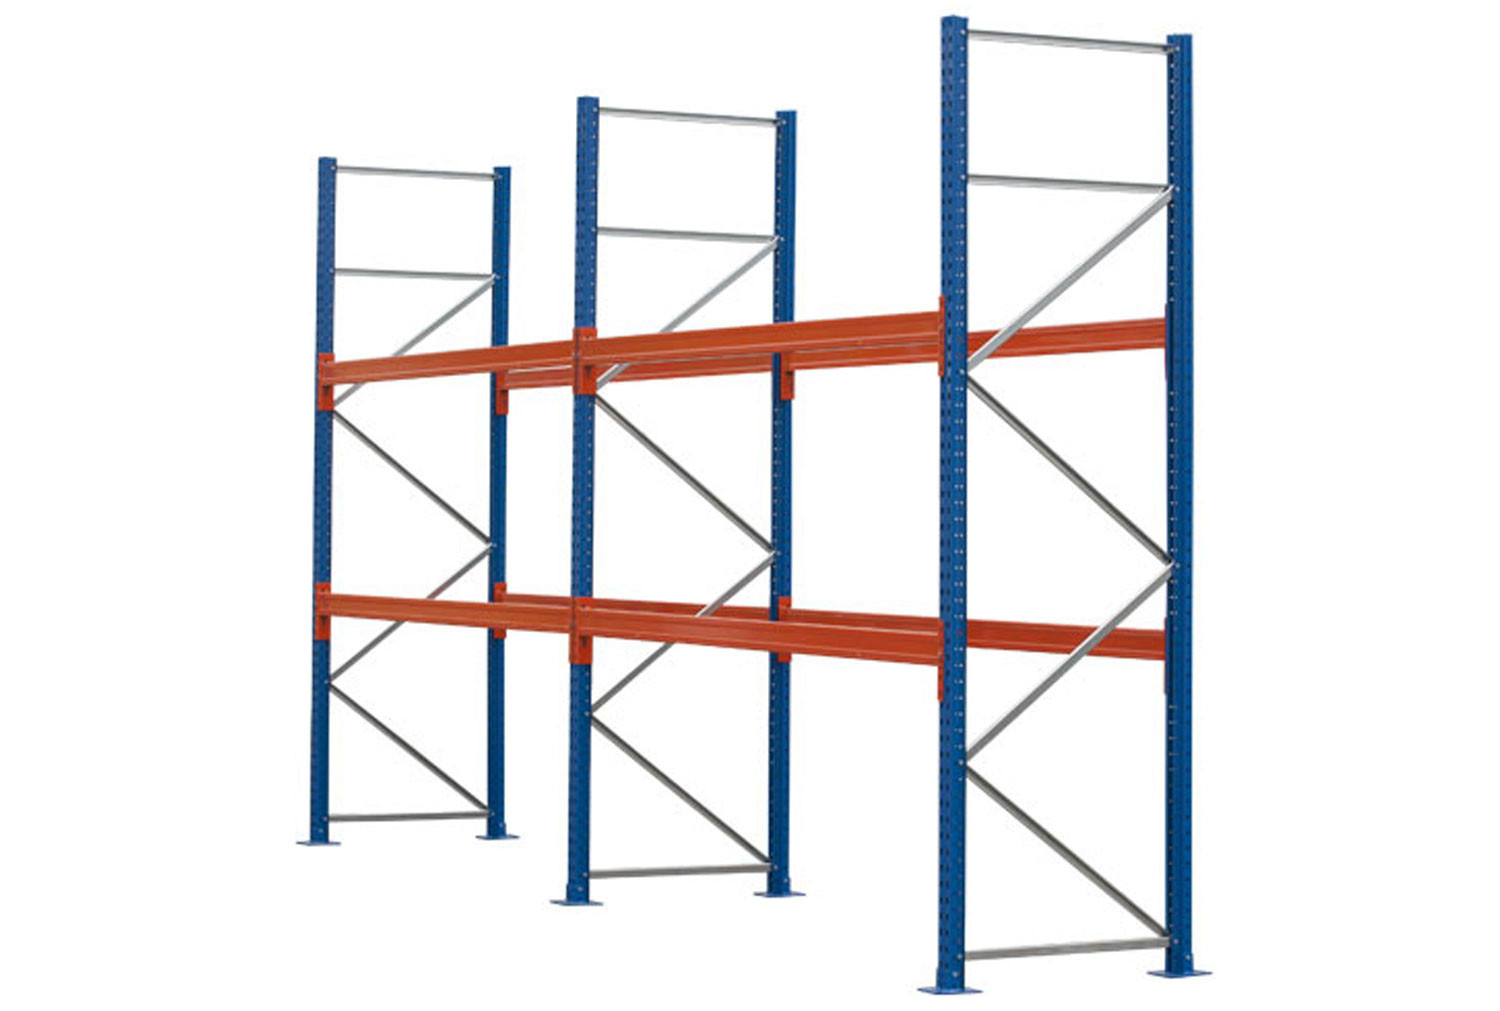 Pallet Racking Kit For 27 Pallets 8503wx3000h